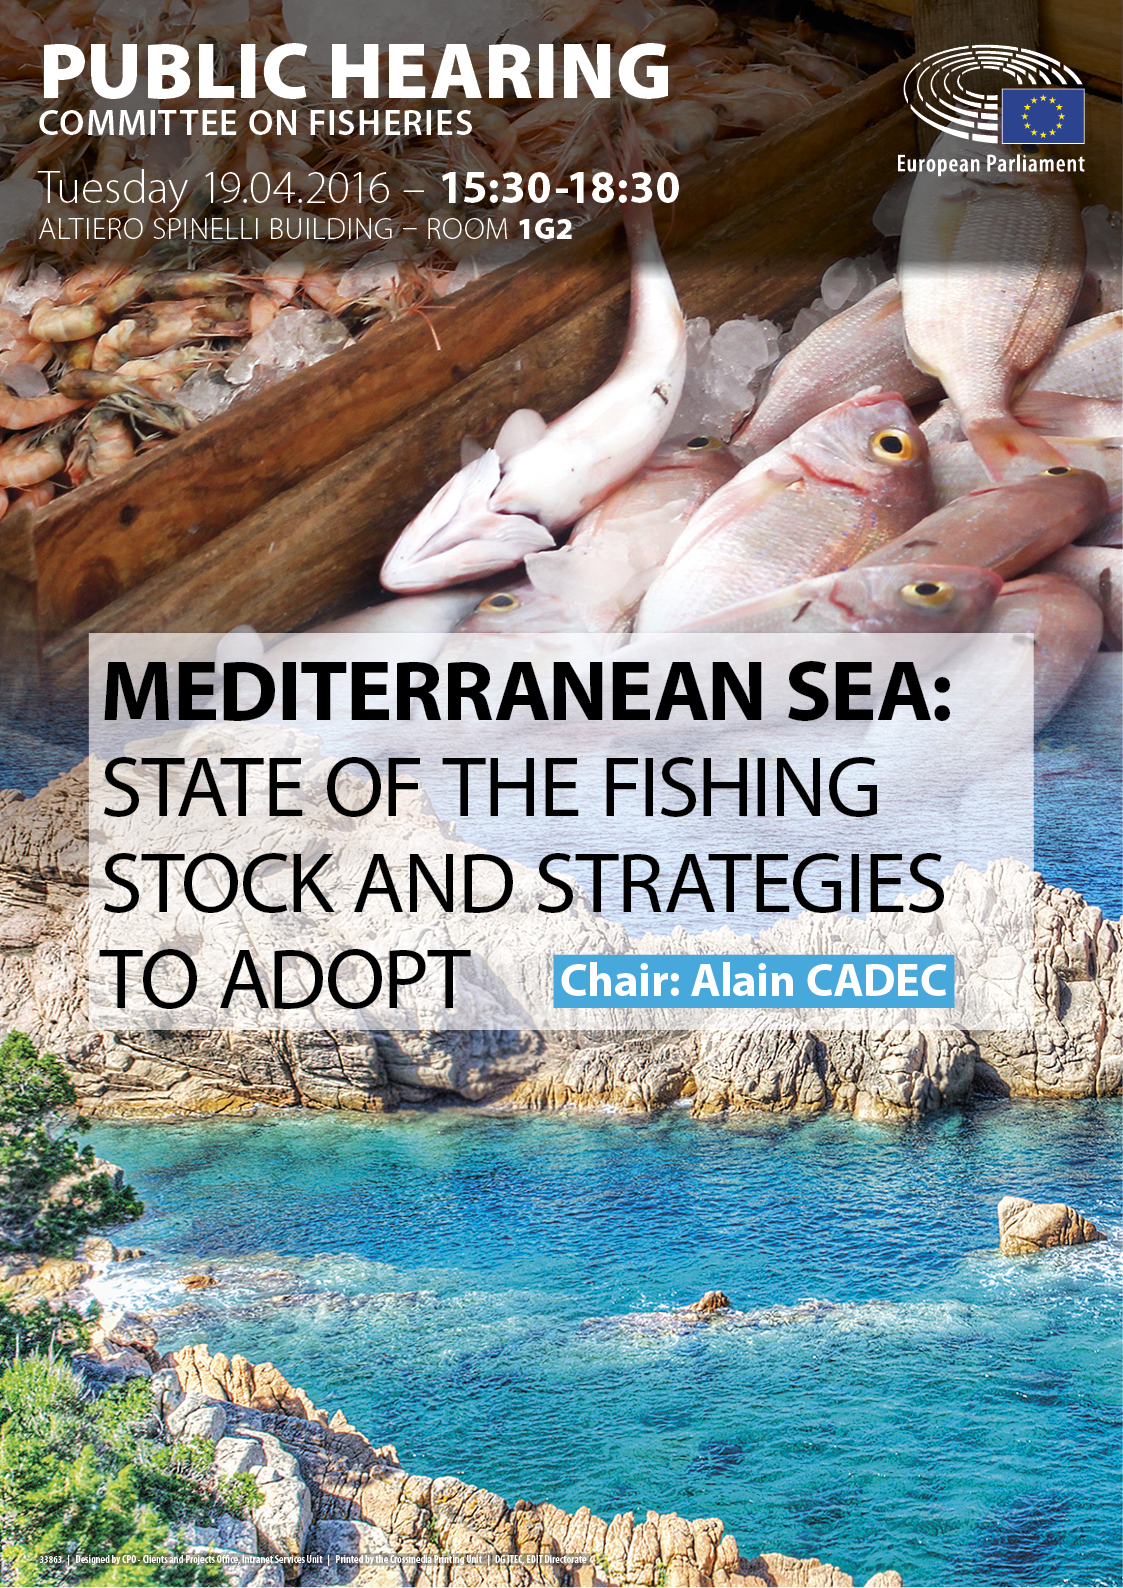 Mediterranean Sea: State of the fishing stock and strategies to adopt